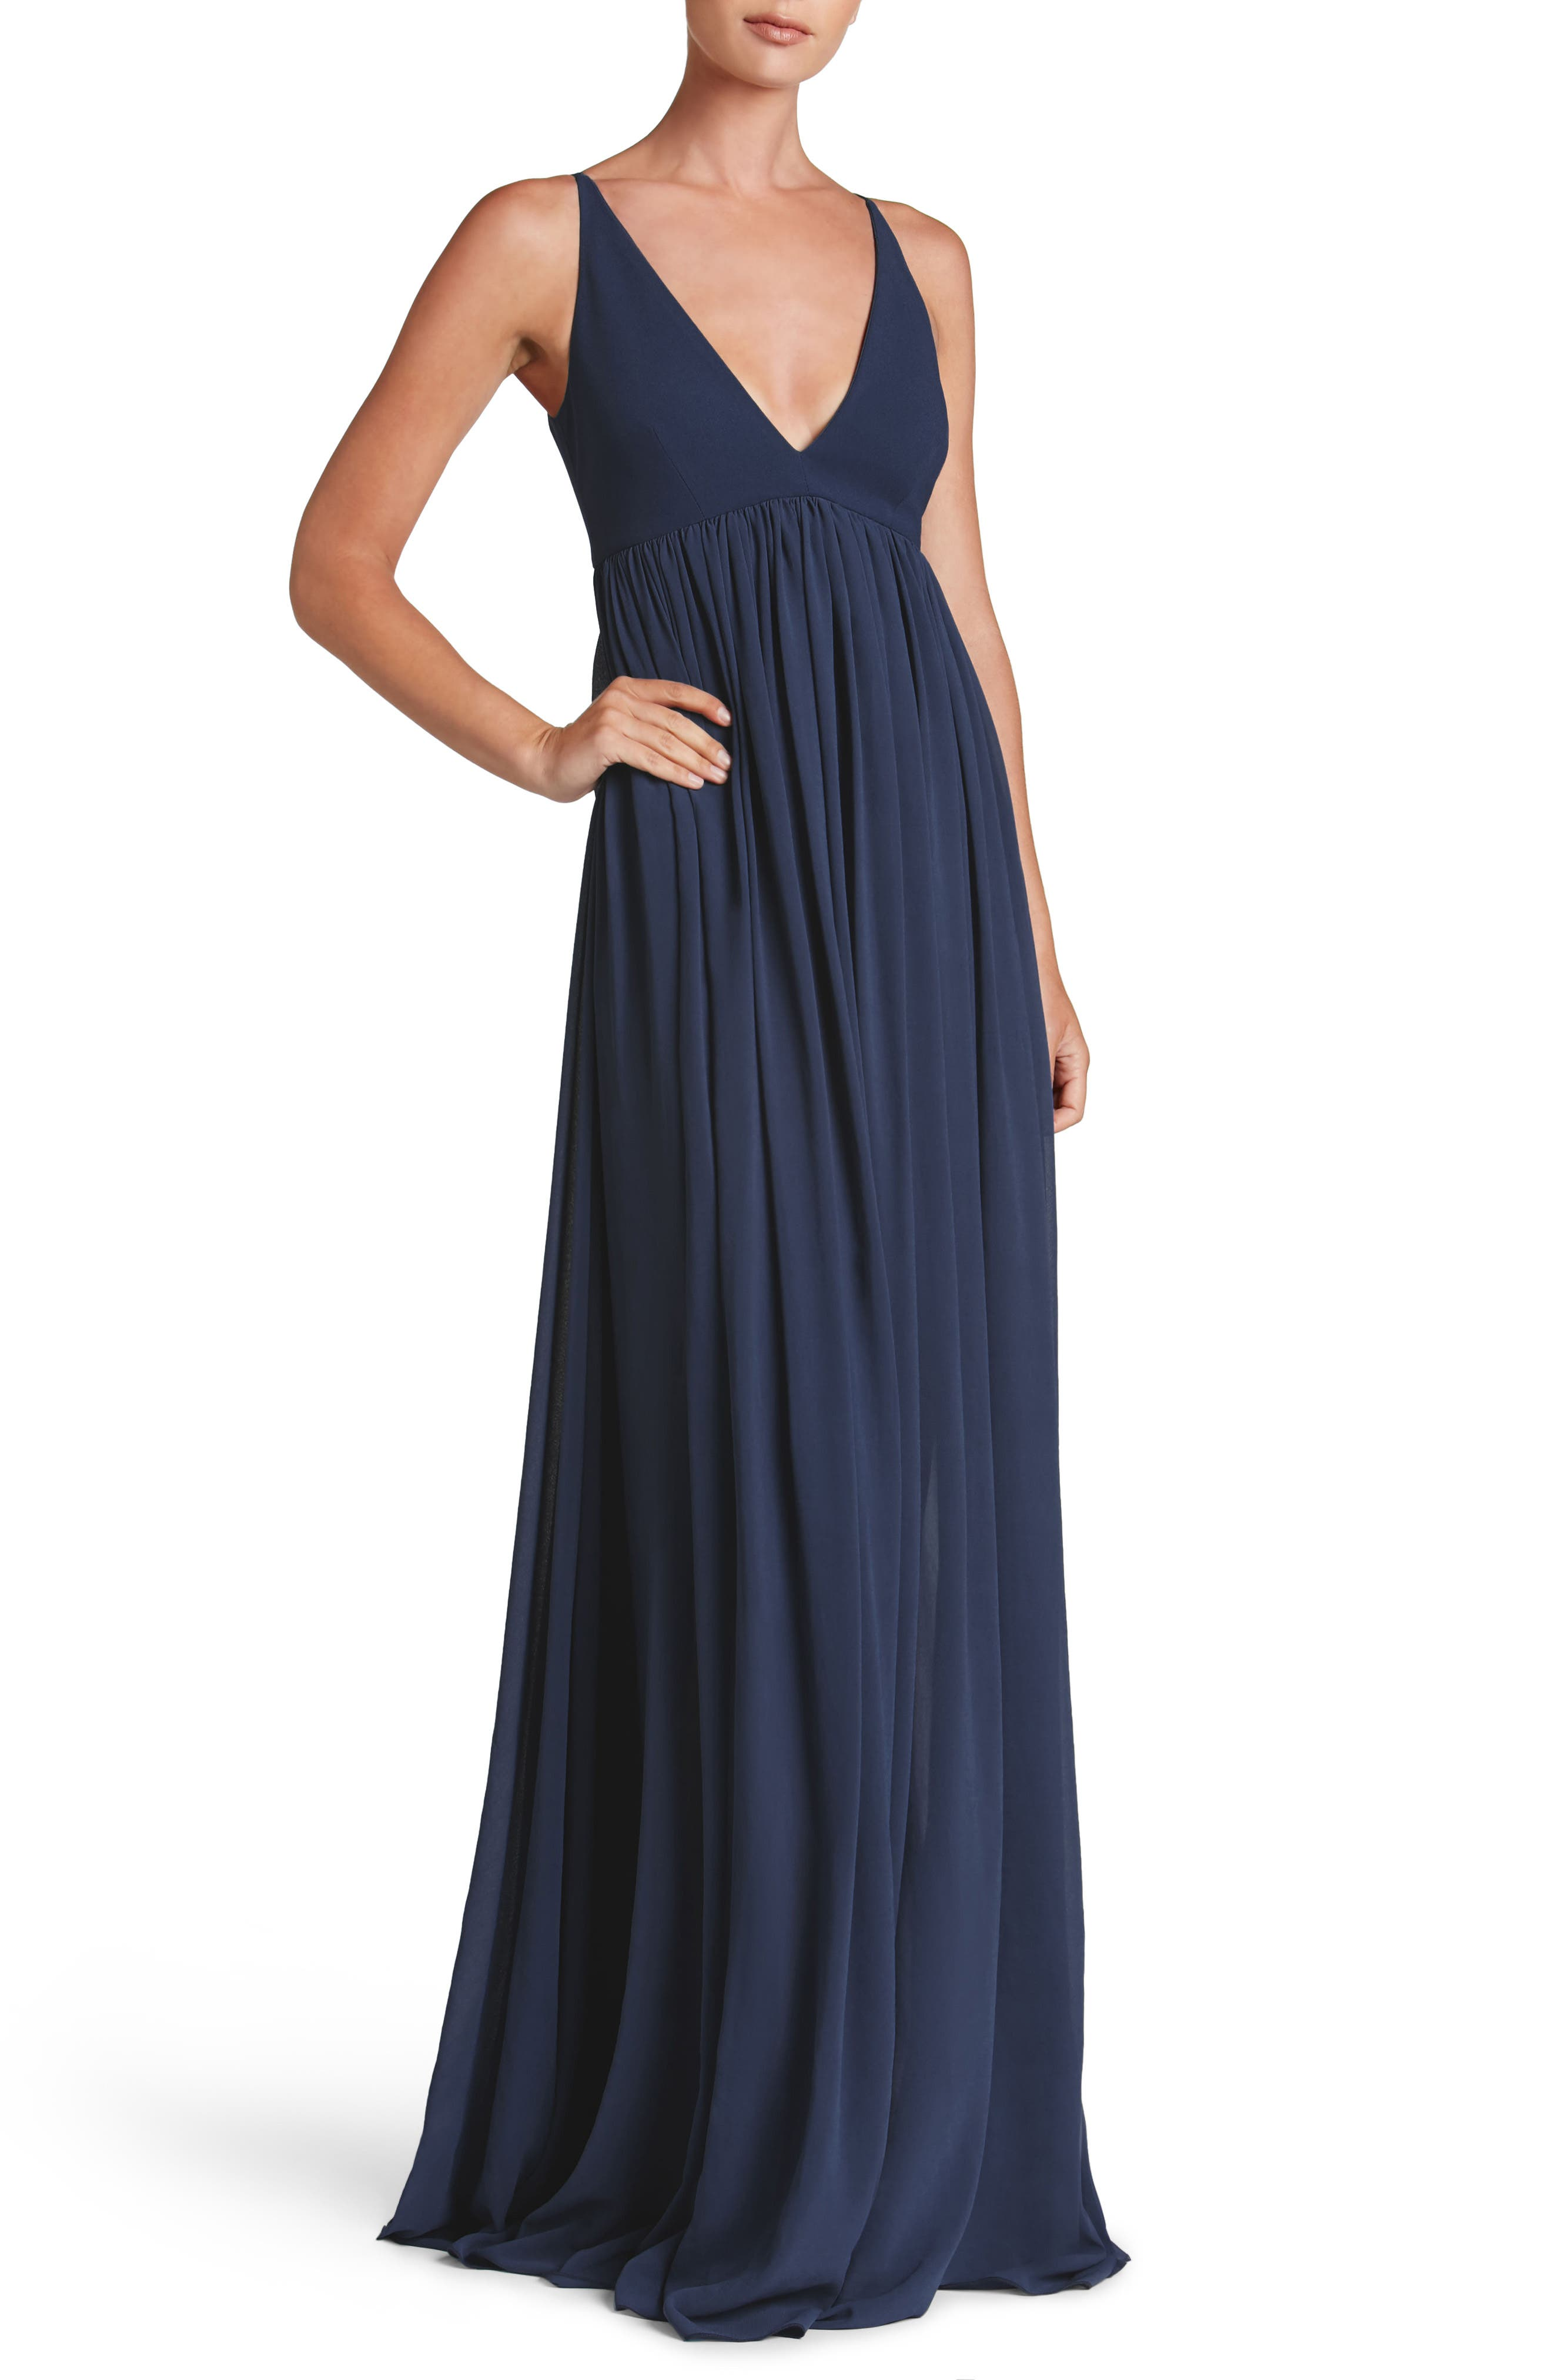 Phoebe Chiffon Gown,                         Main,                         color,